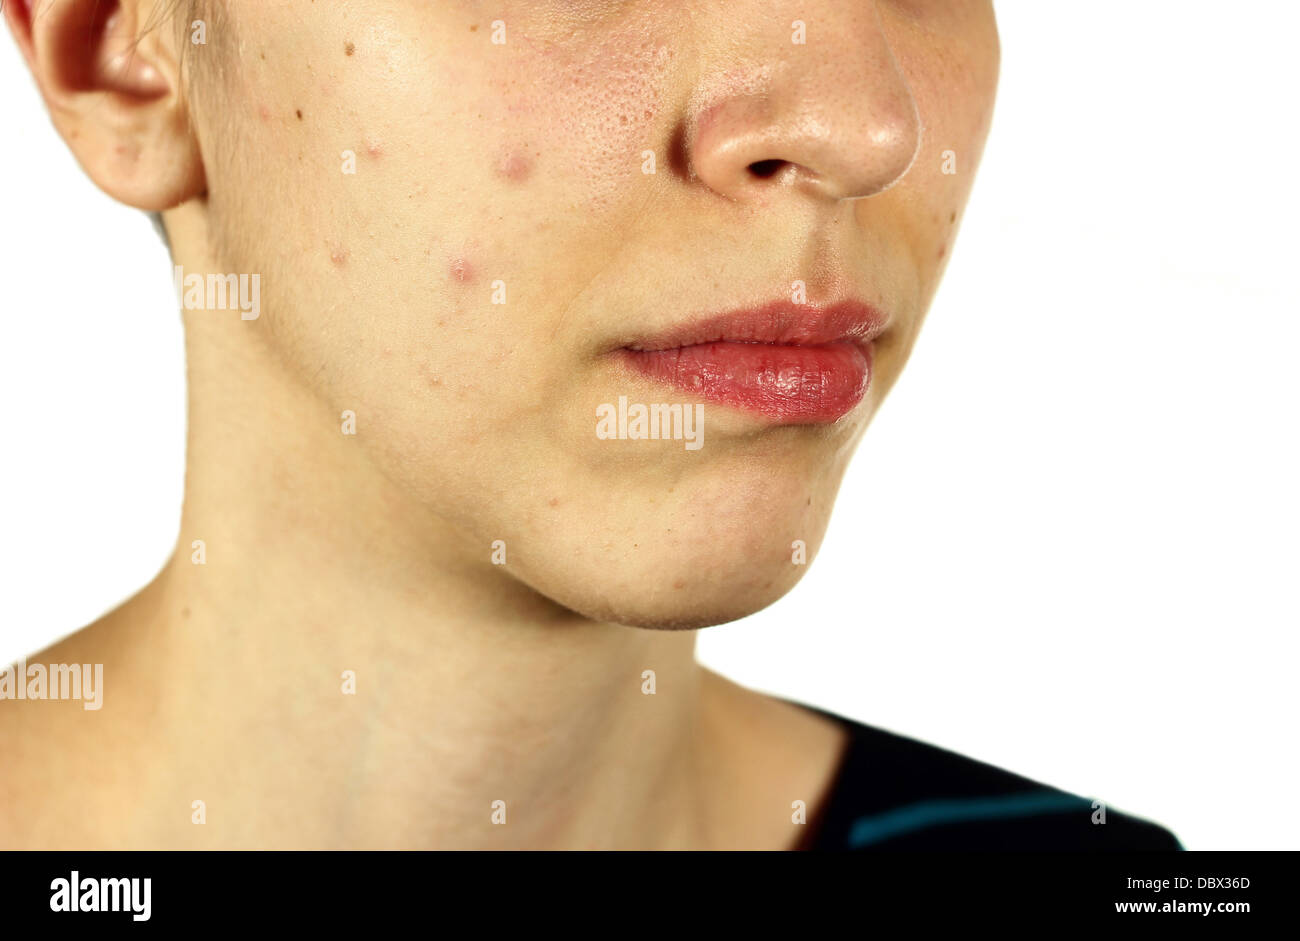 Girl With Bad Skin Acne And Black Heads On White Background Stock